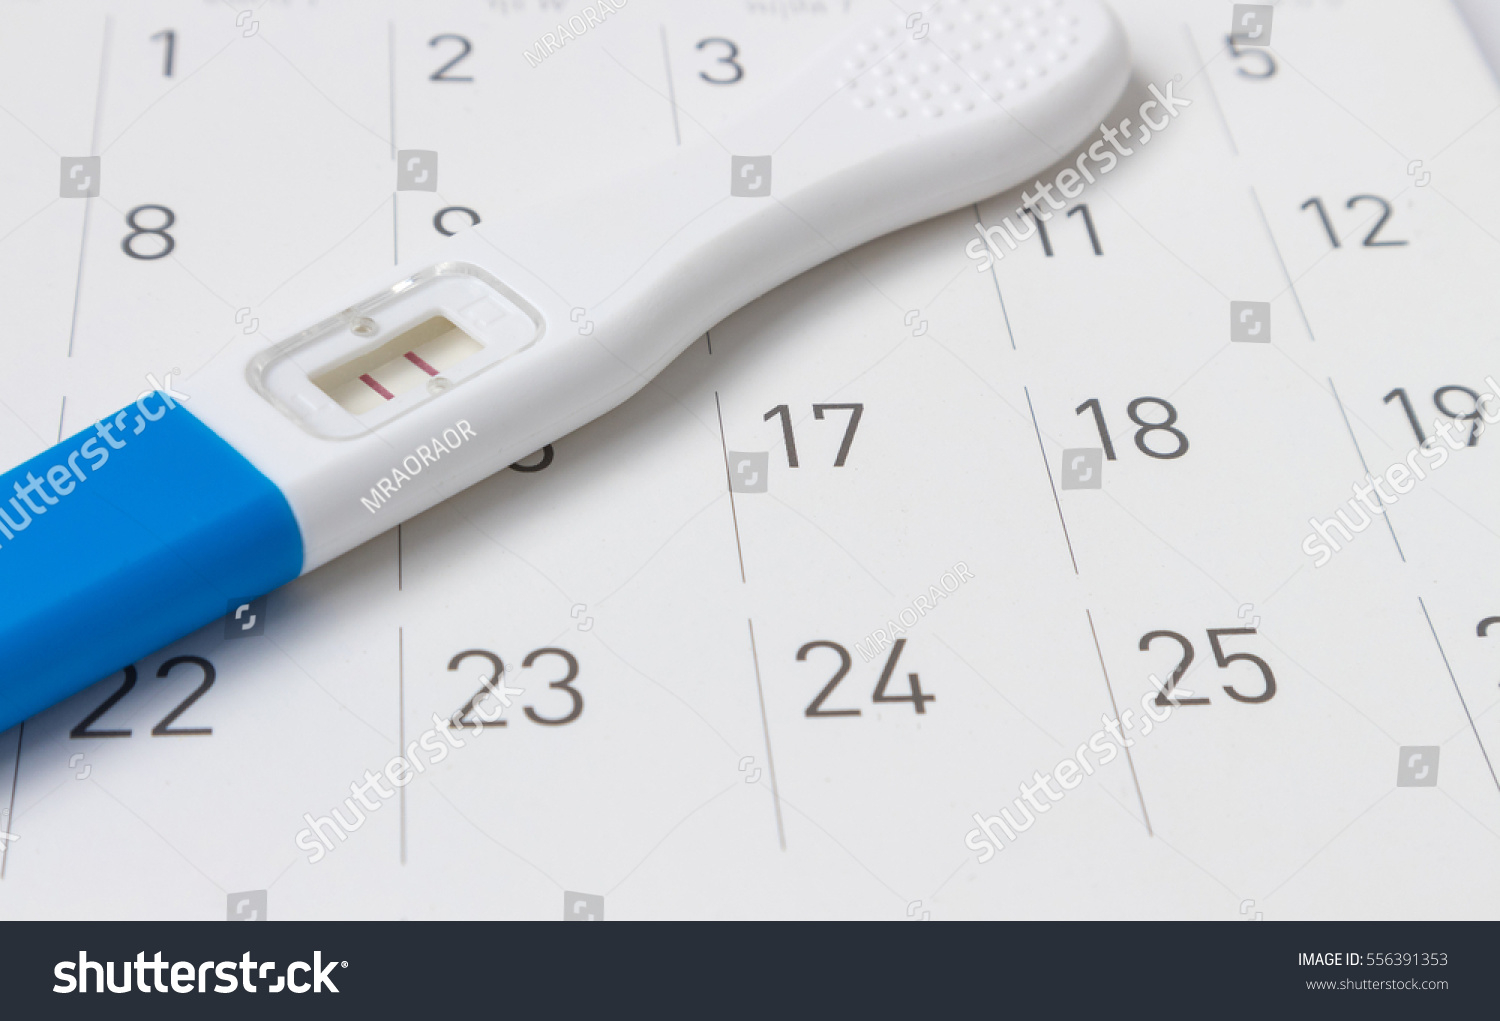 Pregnancy Test On Calendar Background Health : Стоковая Within When To Take Pregnancy Test Calendar